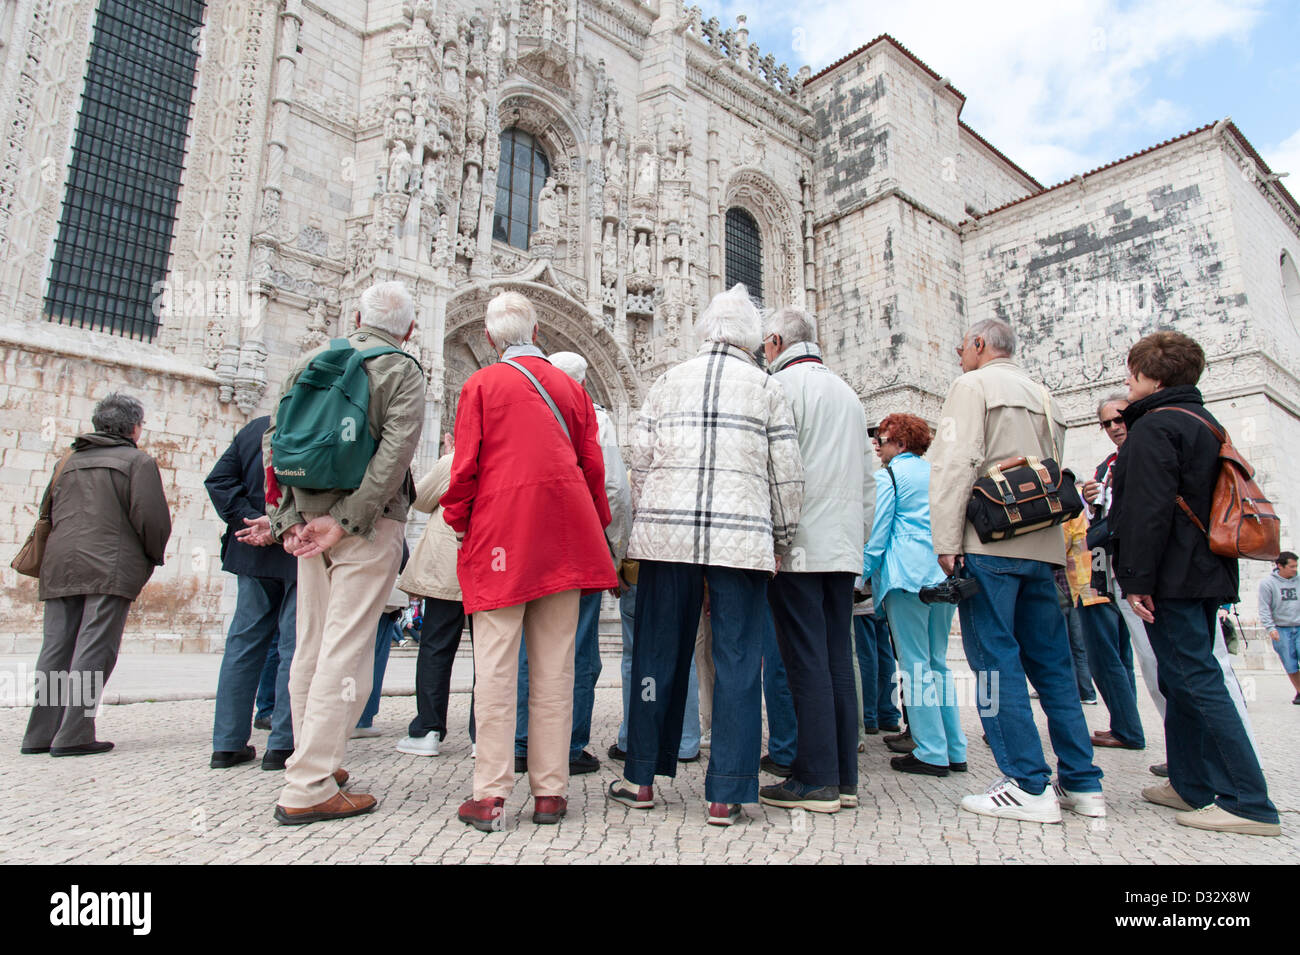 Group of elderly German tourists on a guided tour visiting the Jeronimos Monastery, Lisbon, Portugal - Stock Image